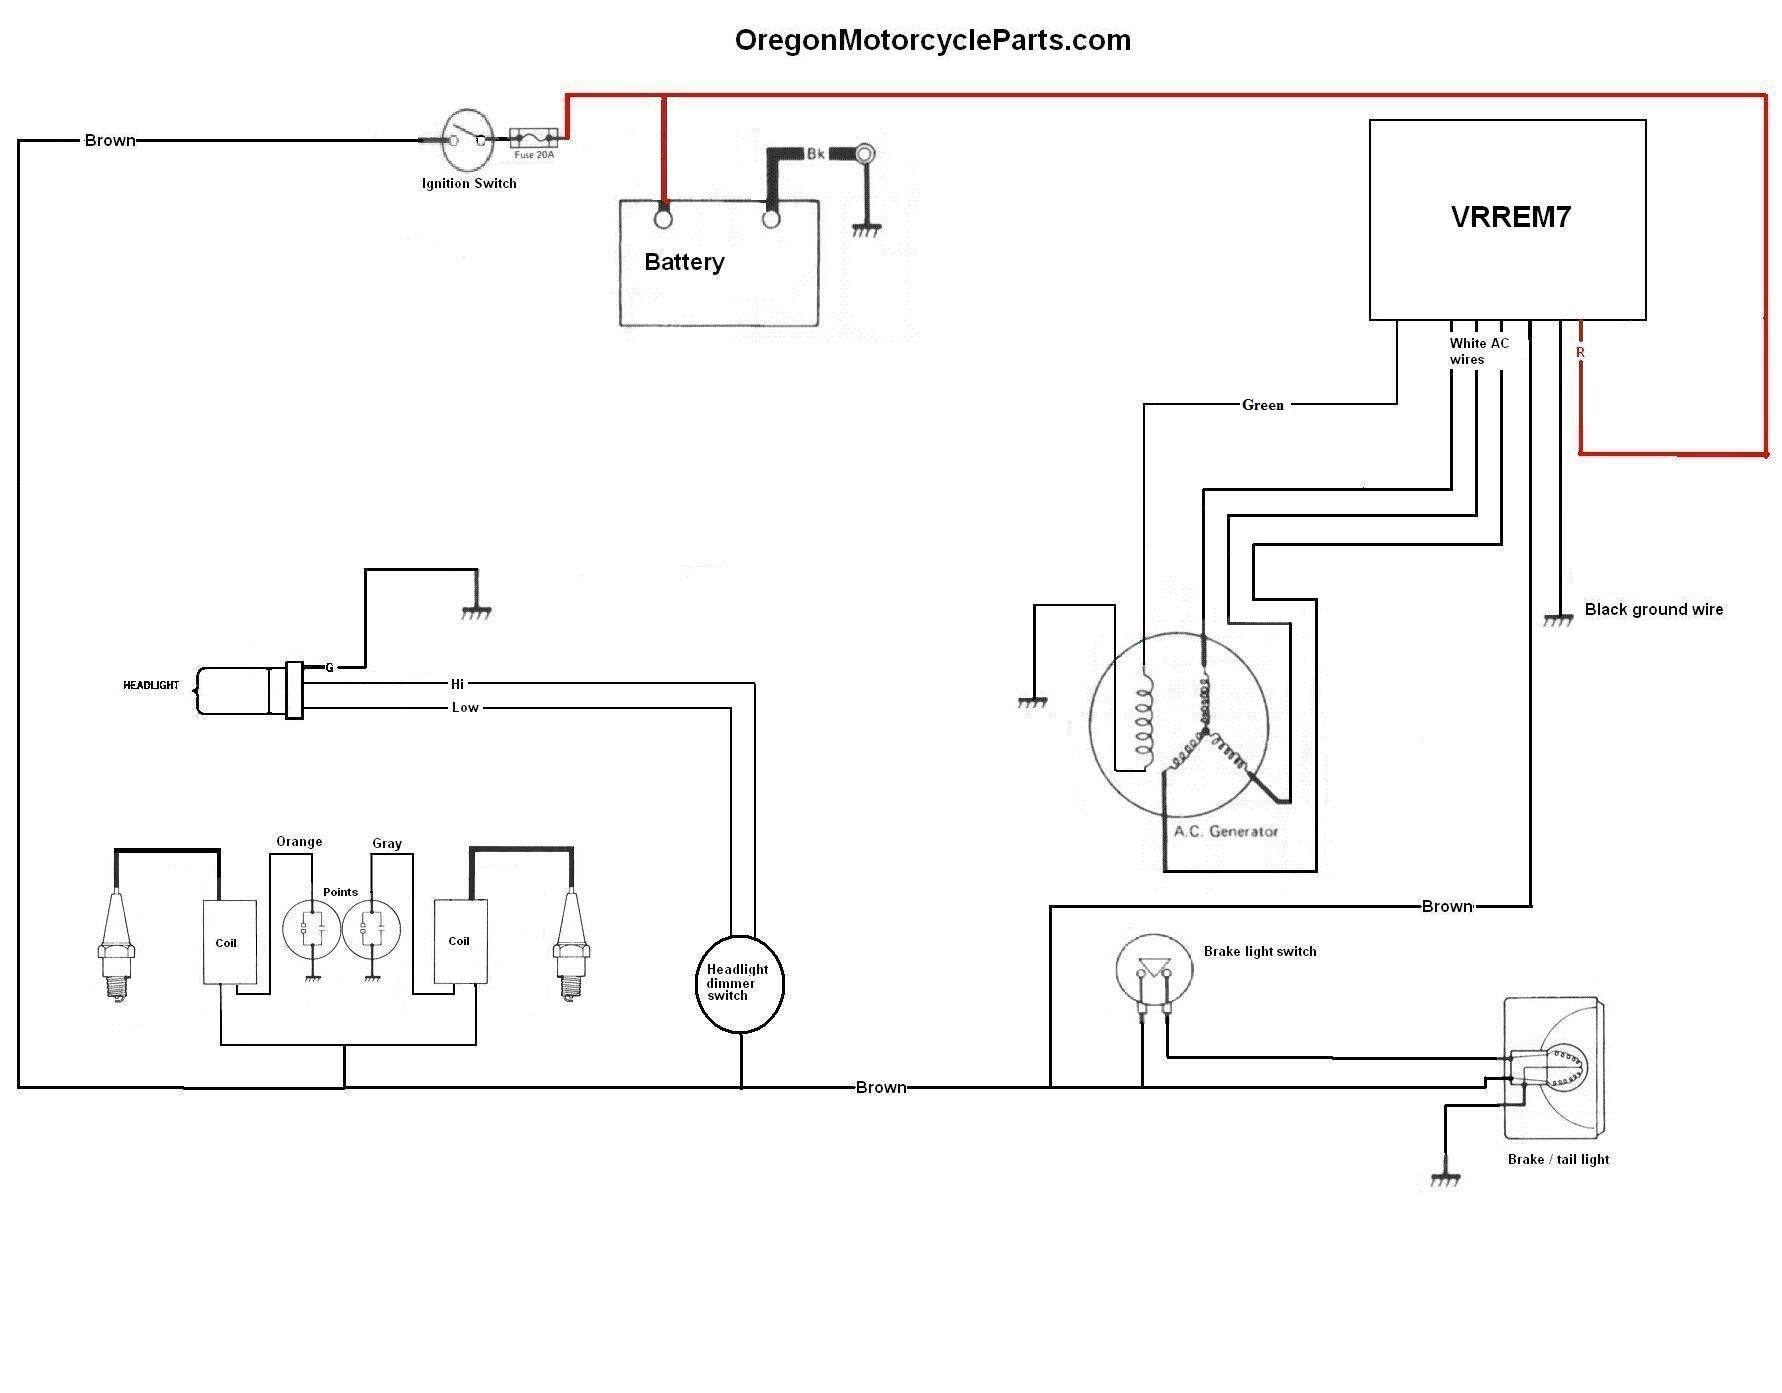 hight resolution of  original equipped with a separate regulator and rectifier this is an updated version fixing a small mistake in the previous version of the diagram